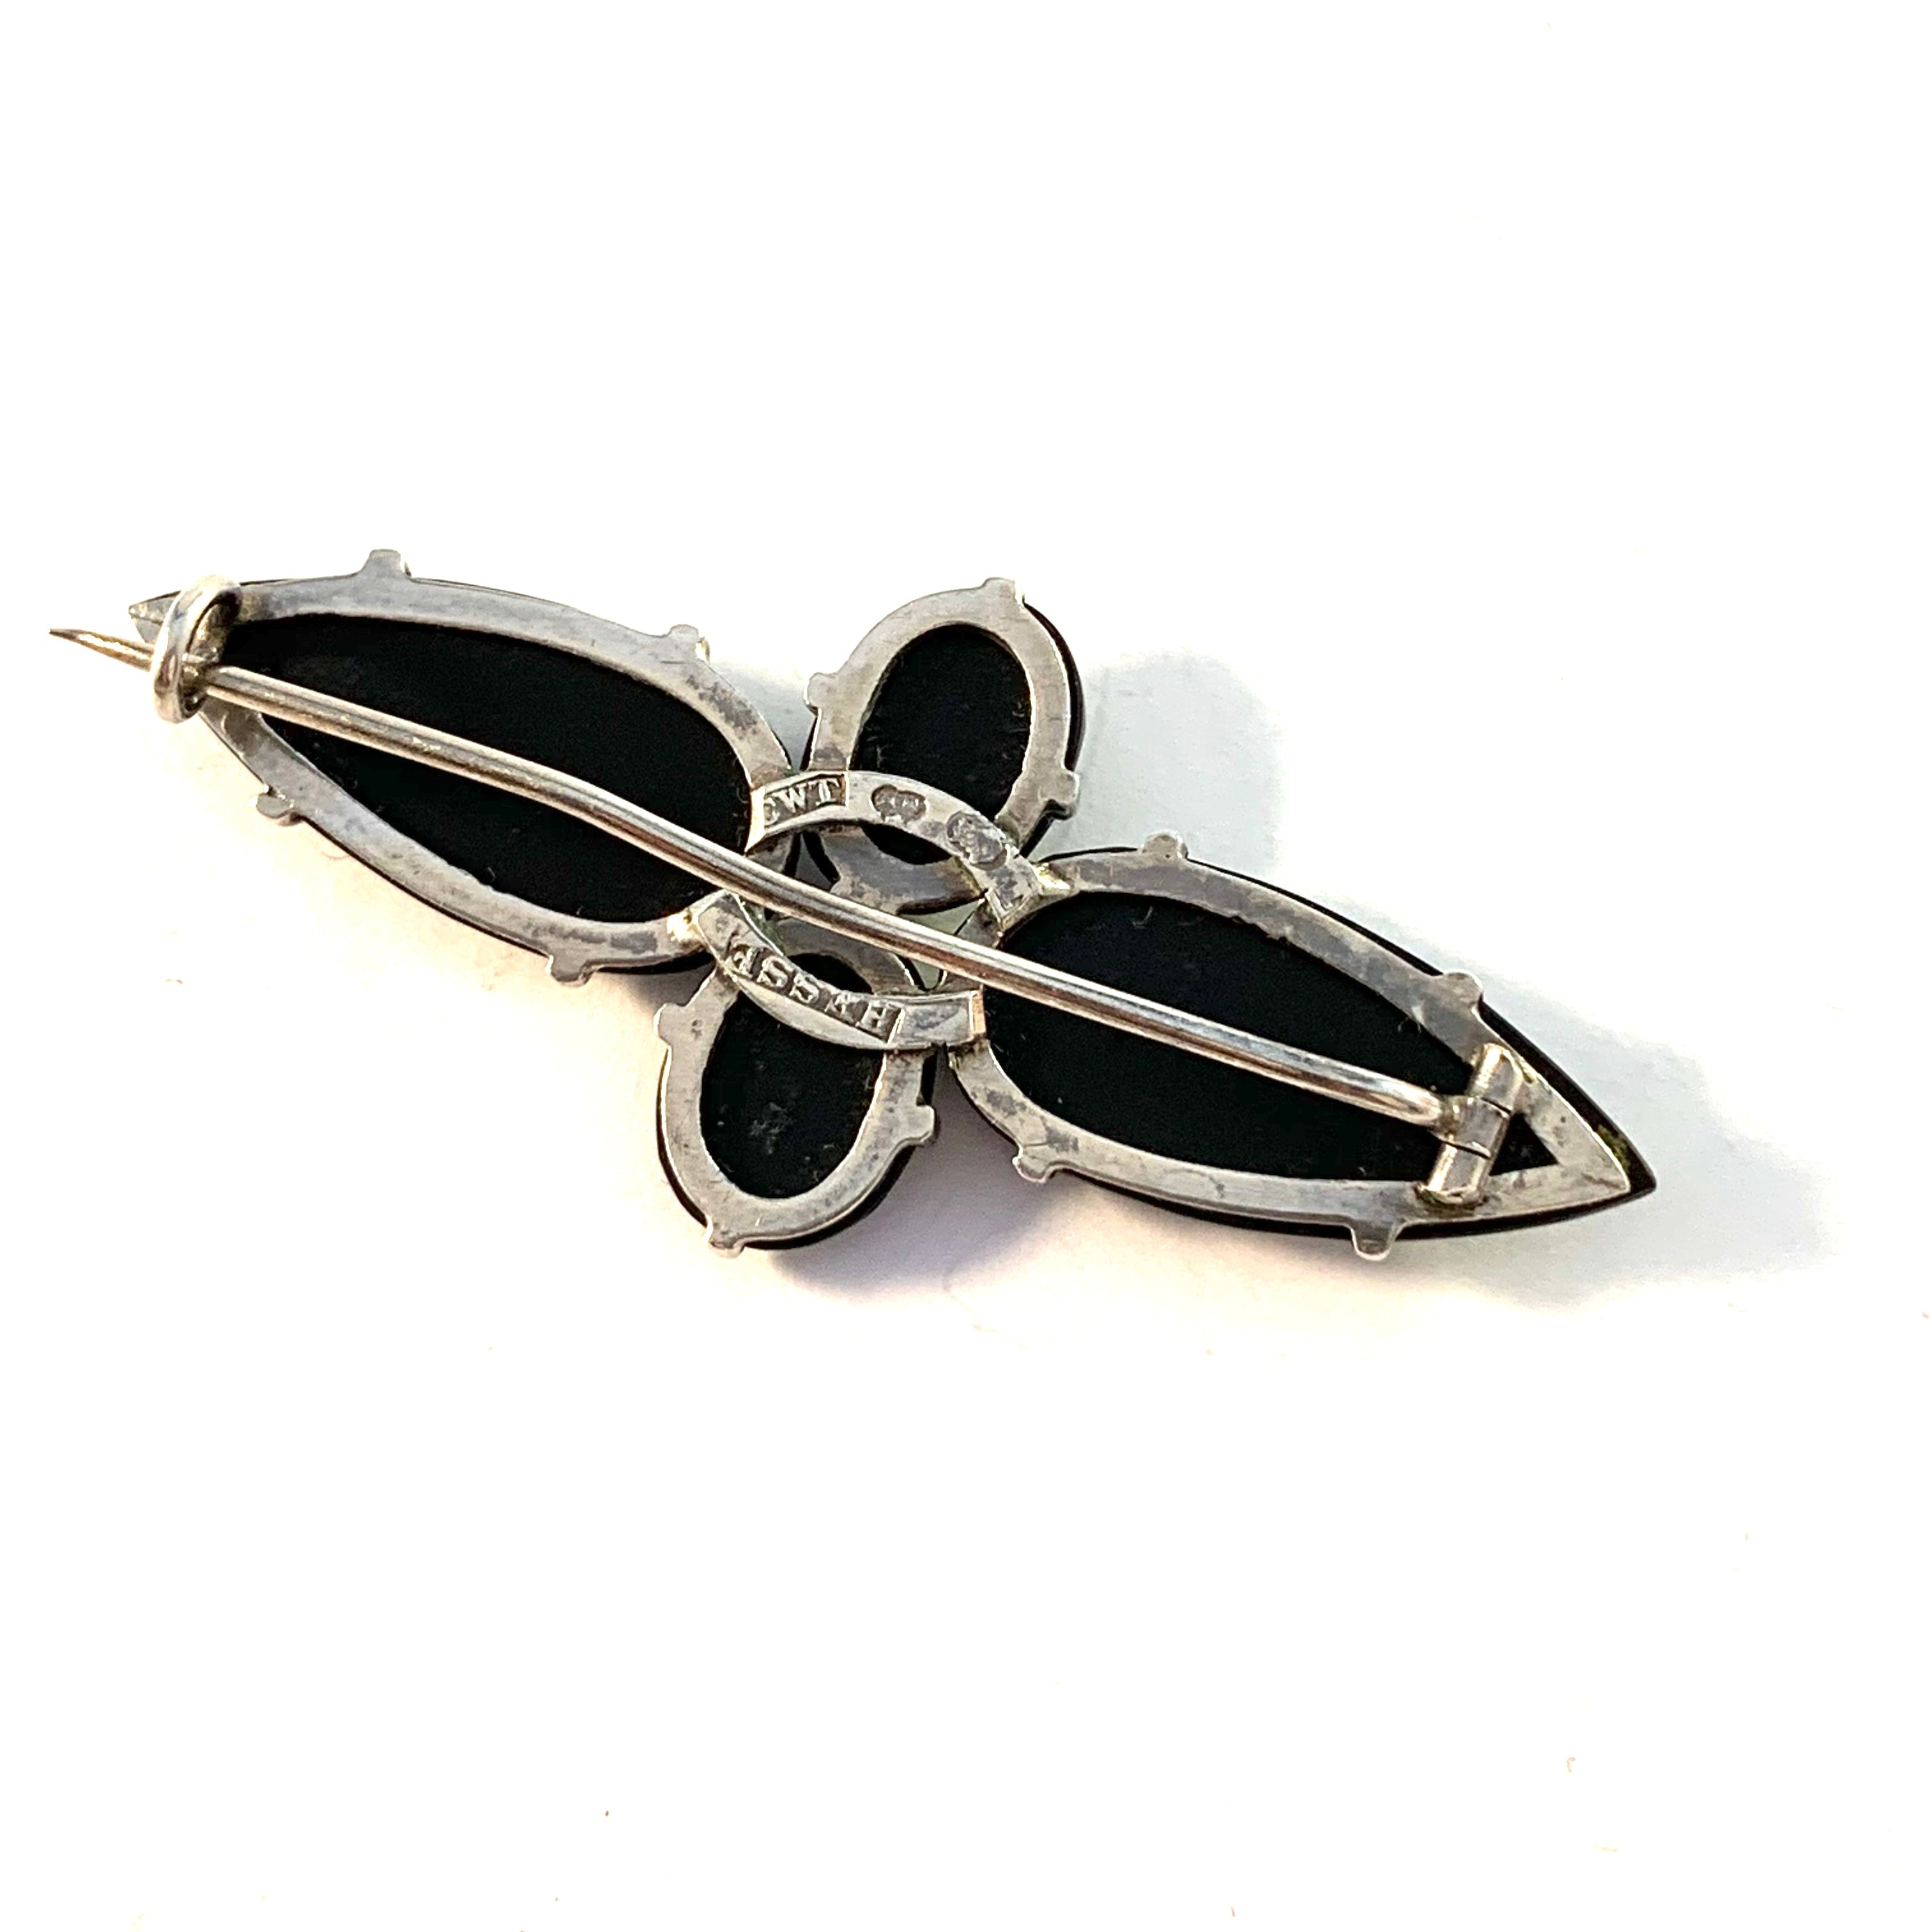 C W Täckholm, Stockholm c year 1910 Solid Silver French Jet Mourning Brooch.